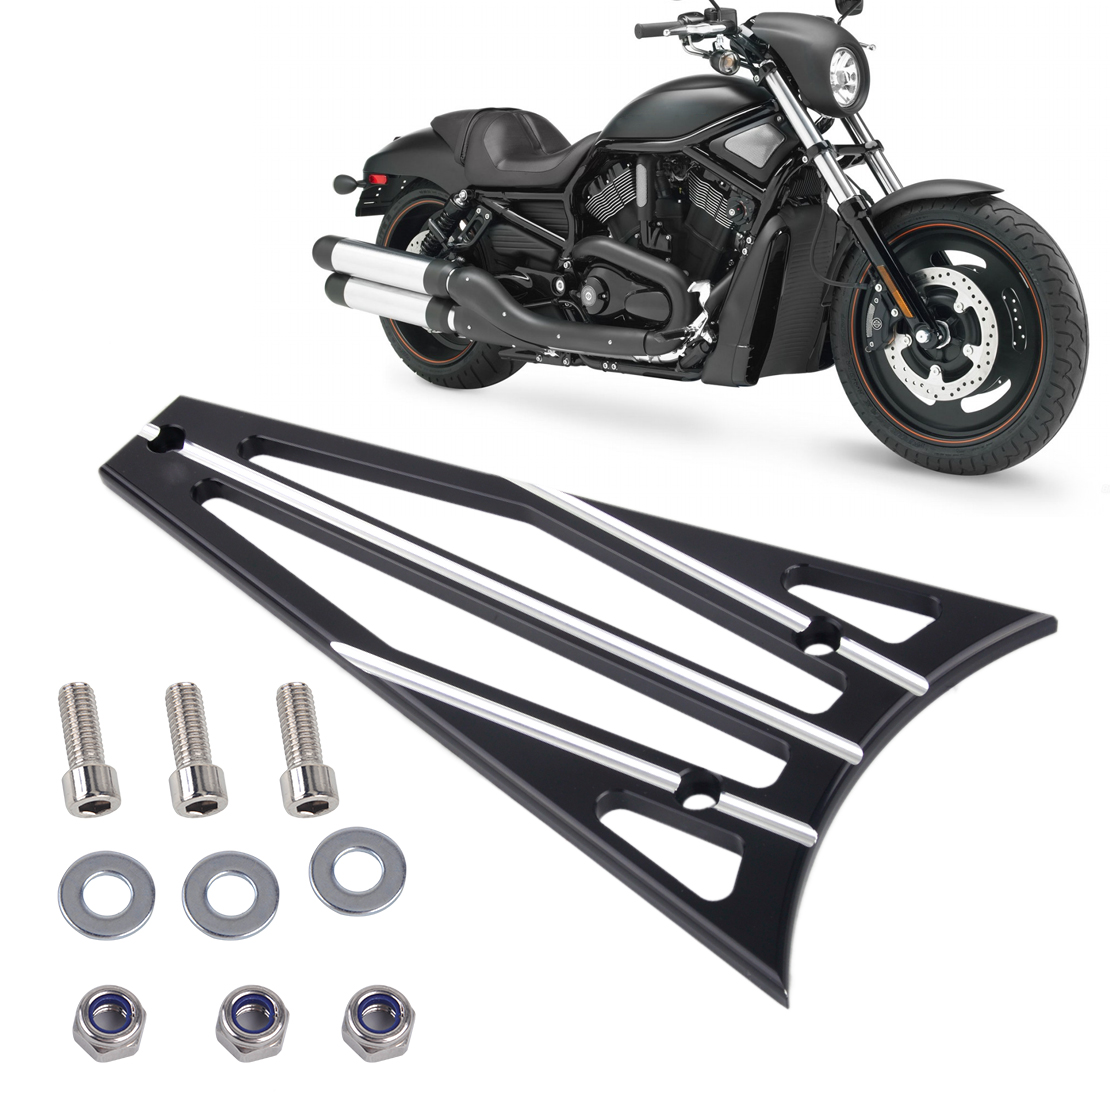 CITALL 3 Columns Billet Deep Cut Frame Grill For Harley Electra Glide Road King Road Street Glide FLHT FLHR FLTR FLHX 2009~ 2013 brand new mid frame air deflector trims for harley cvo limited road king electra glide street electra tri glide flhx 2009 2016